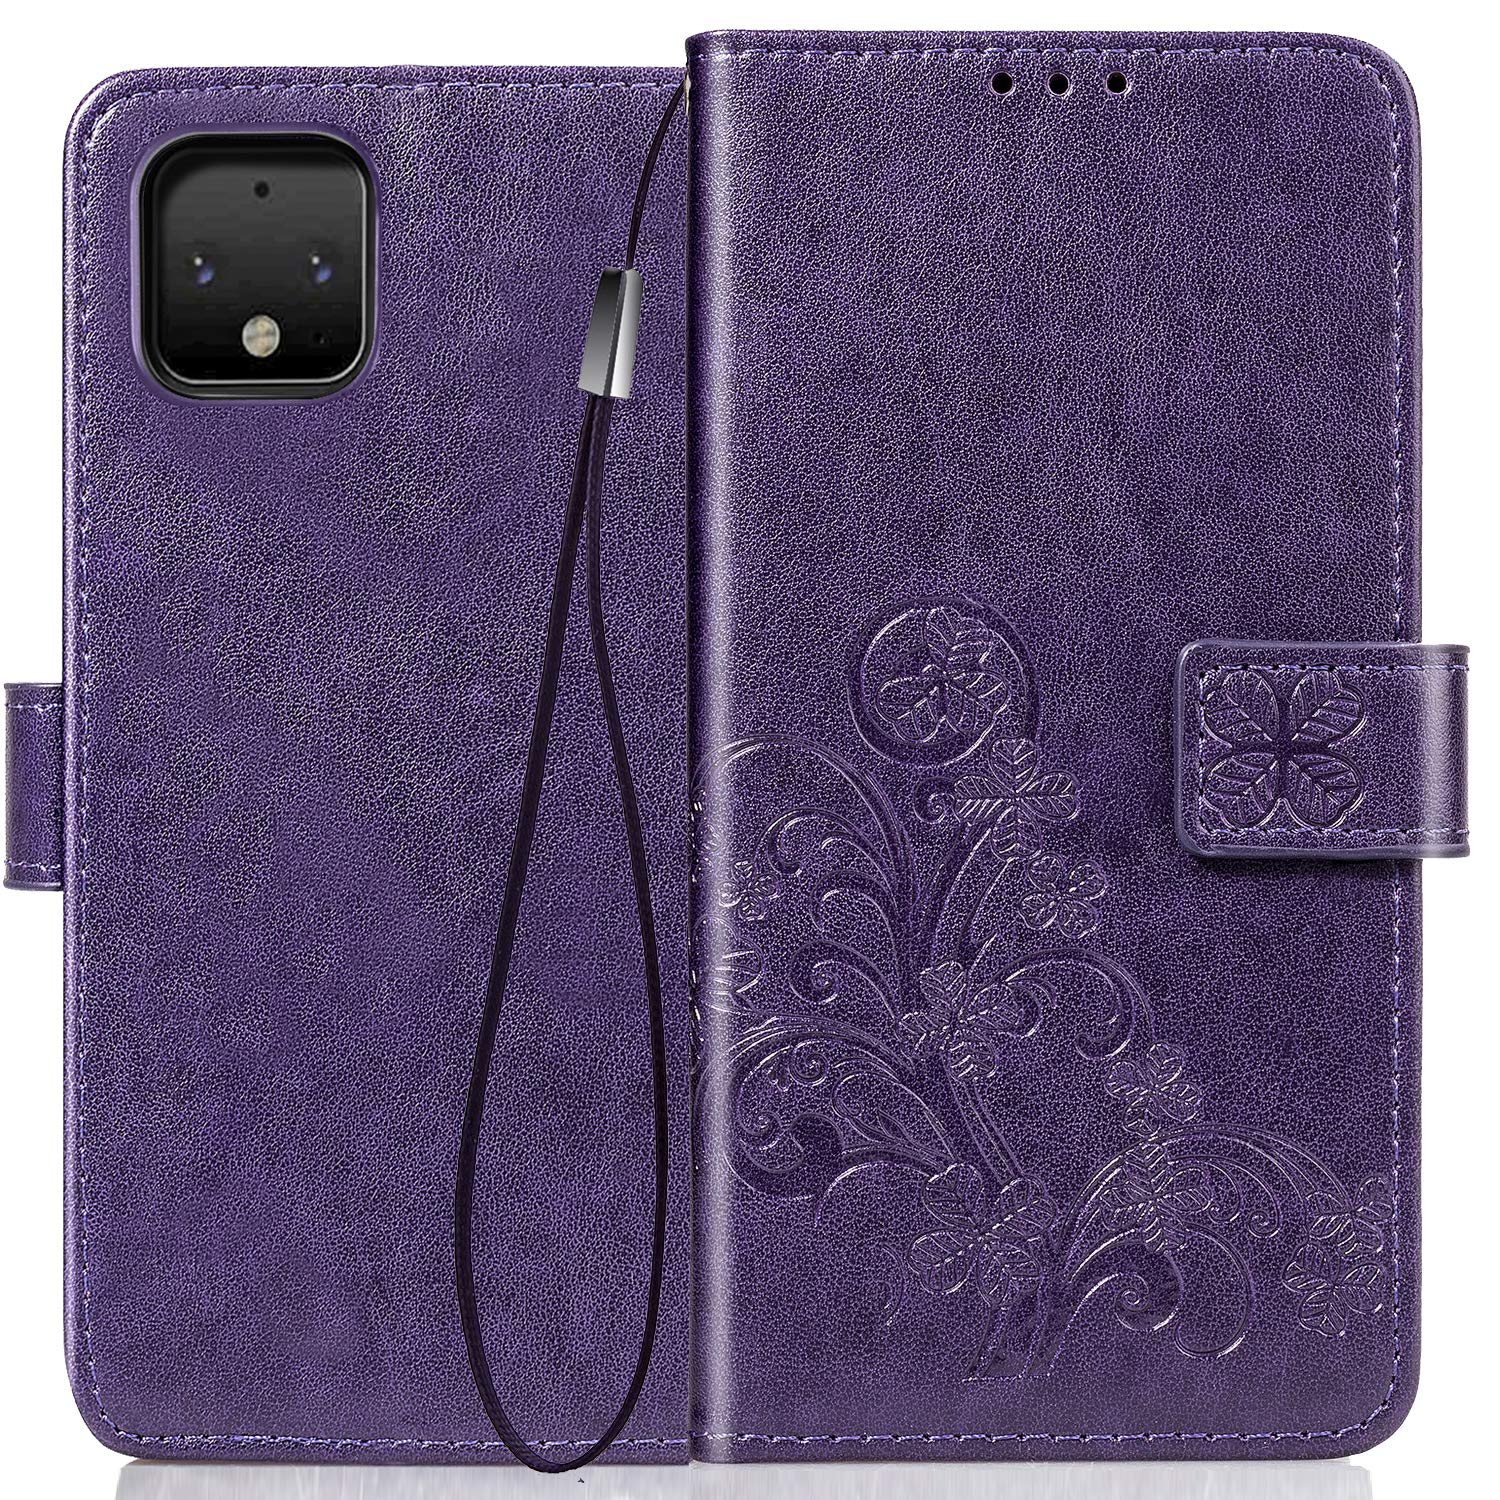 Halnziye for Google Pixel 4 Case - Magnetic Closure Soft TPU Flip Leather Wallet Phone Case with Kickstand Card Slots Designed for Google Pixel 4 Case Cover (Purple)